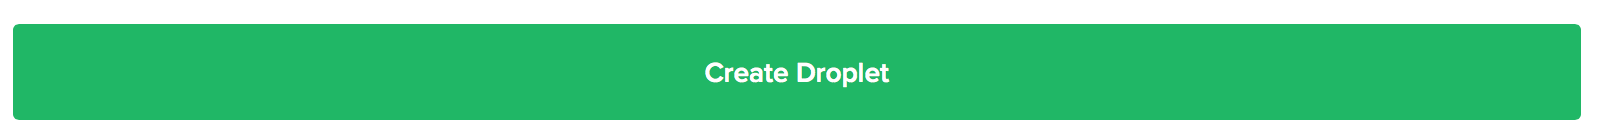 Press 'Create Droplet' to create your Owncloud instance